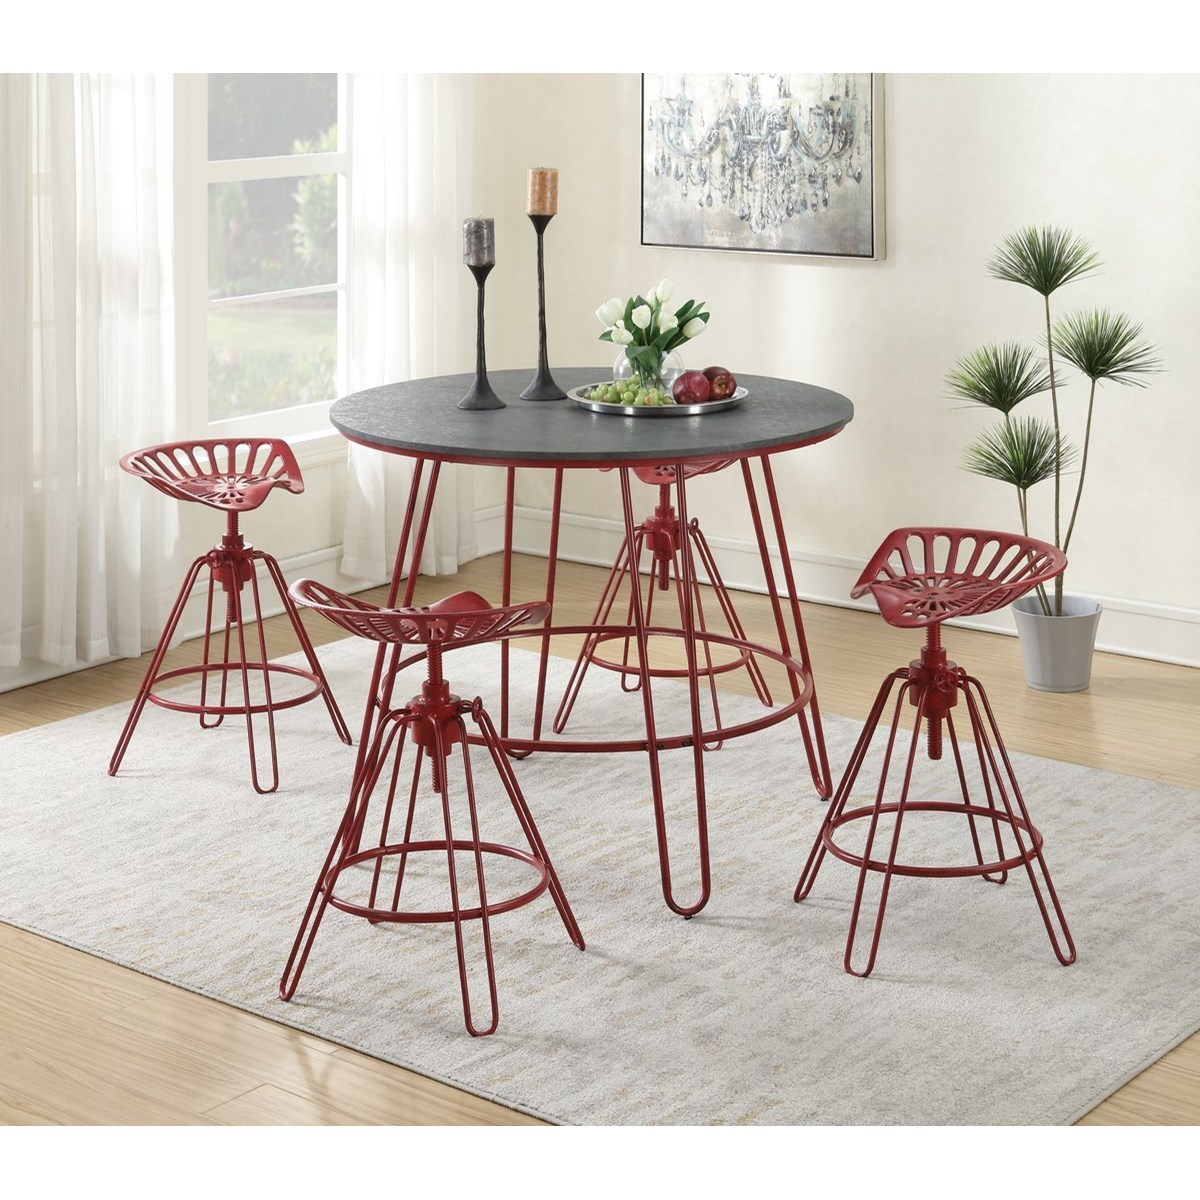 Langston 5-Piece Pub Table Set by Emerald at Northeast Factory Direct